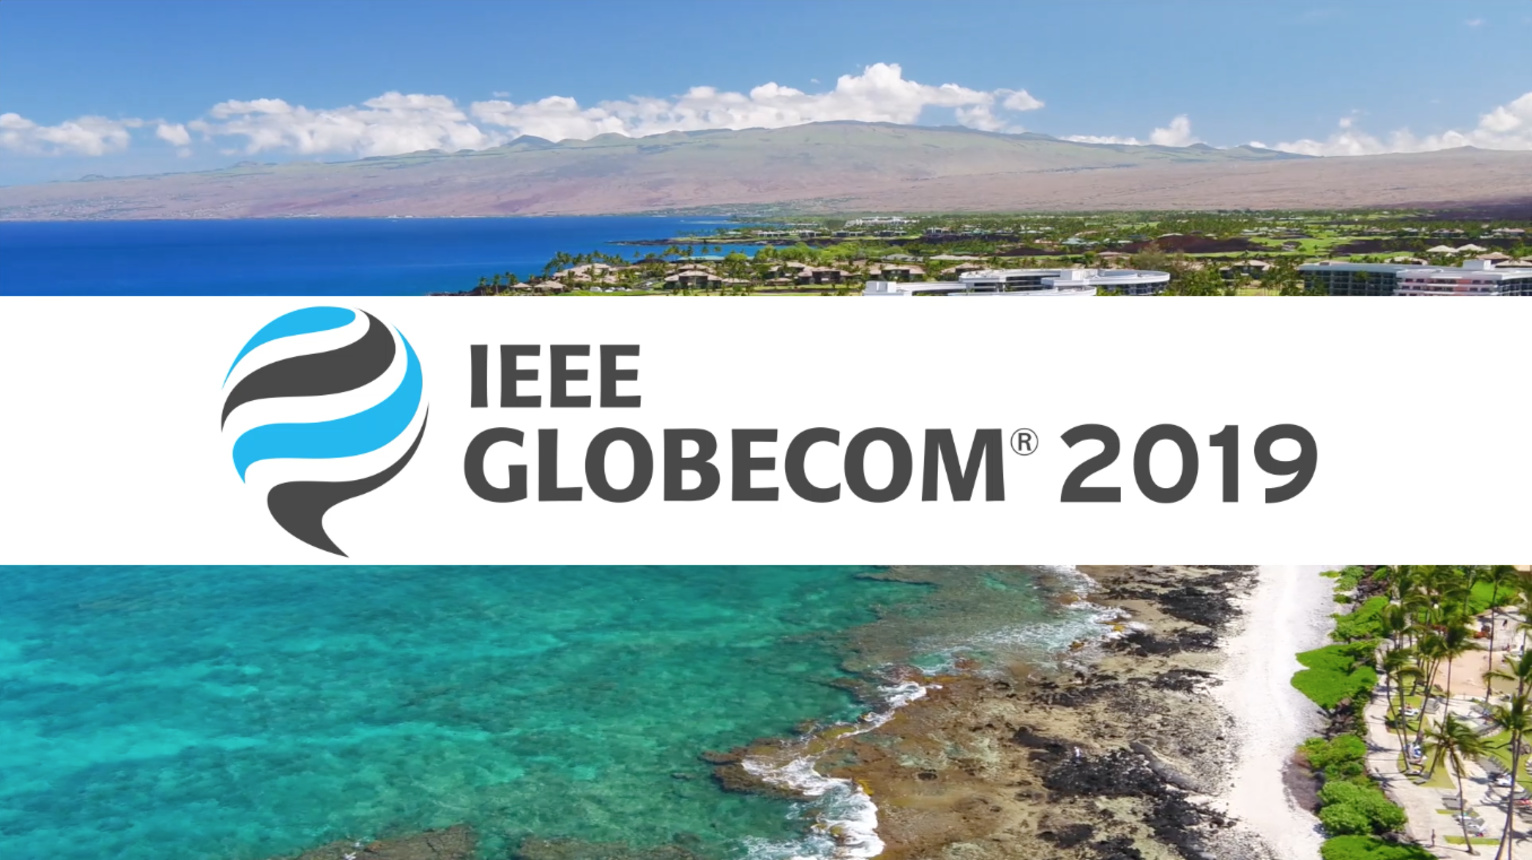 GLOBECOM 2019 - Join Us in Hawaii!